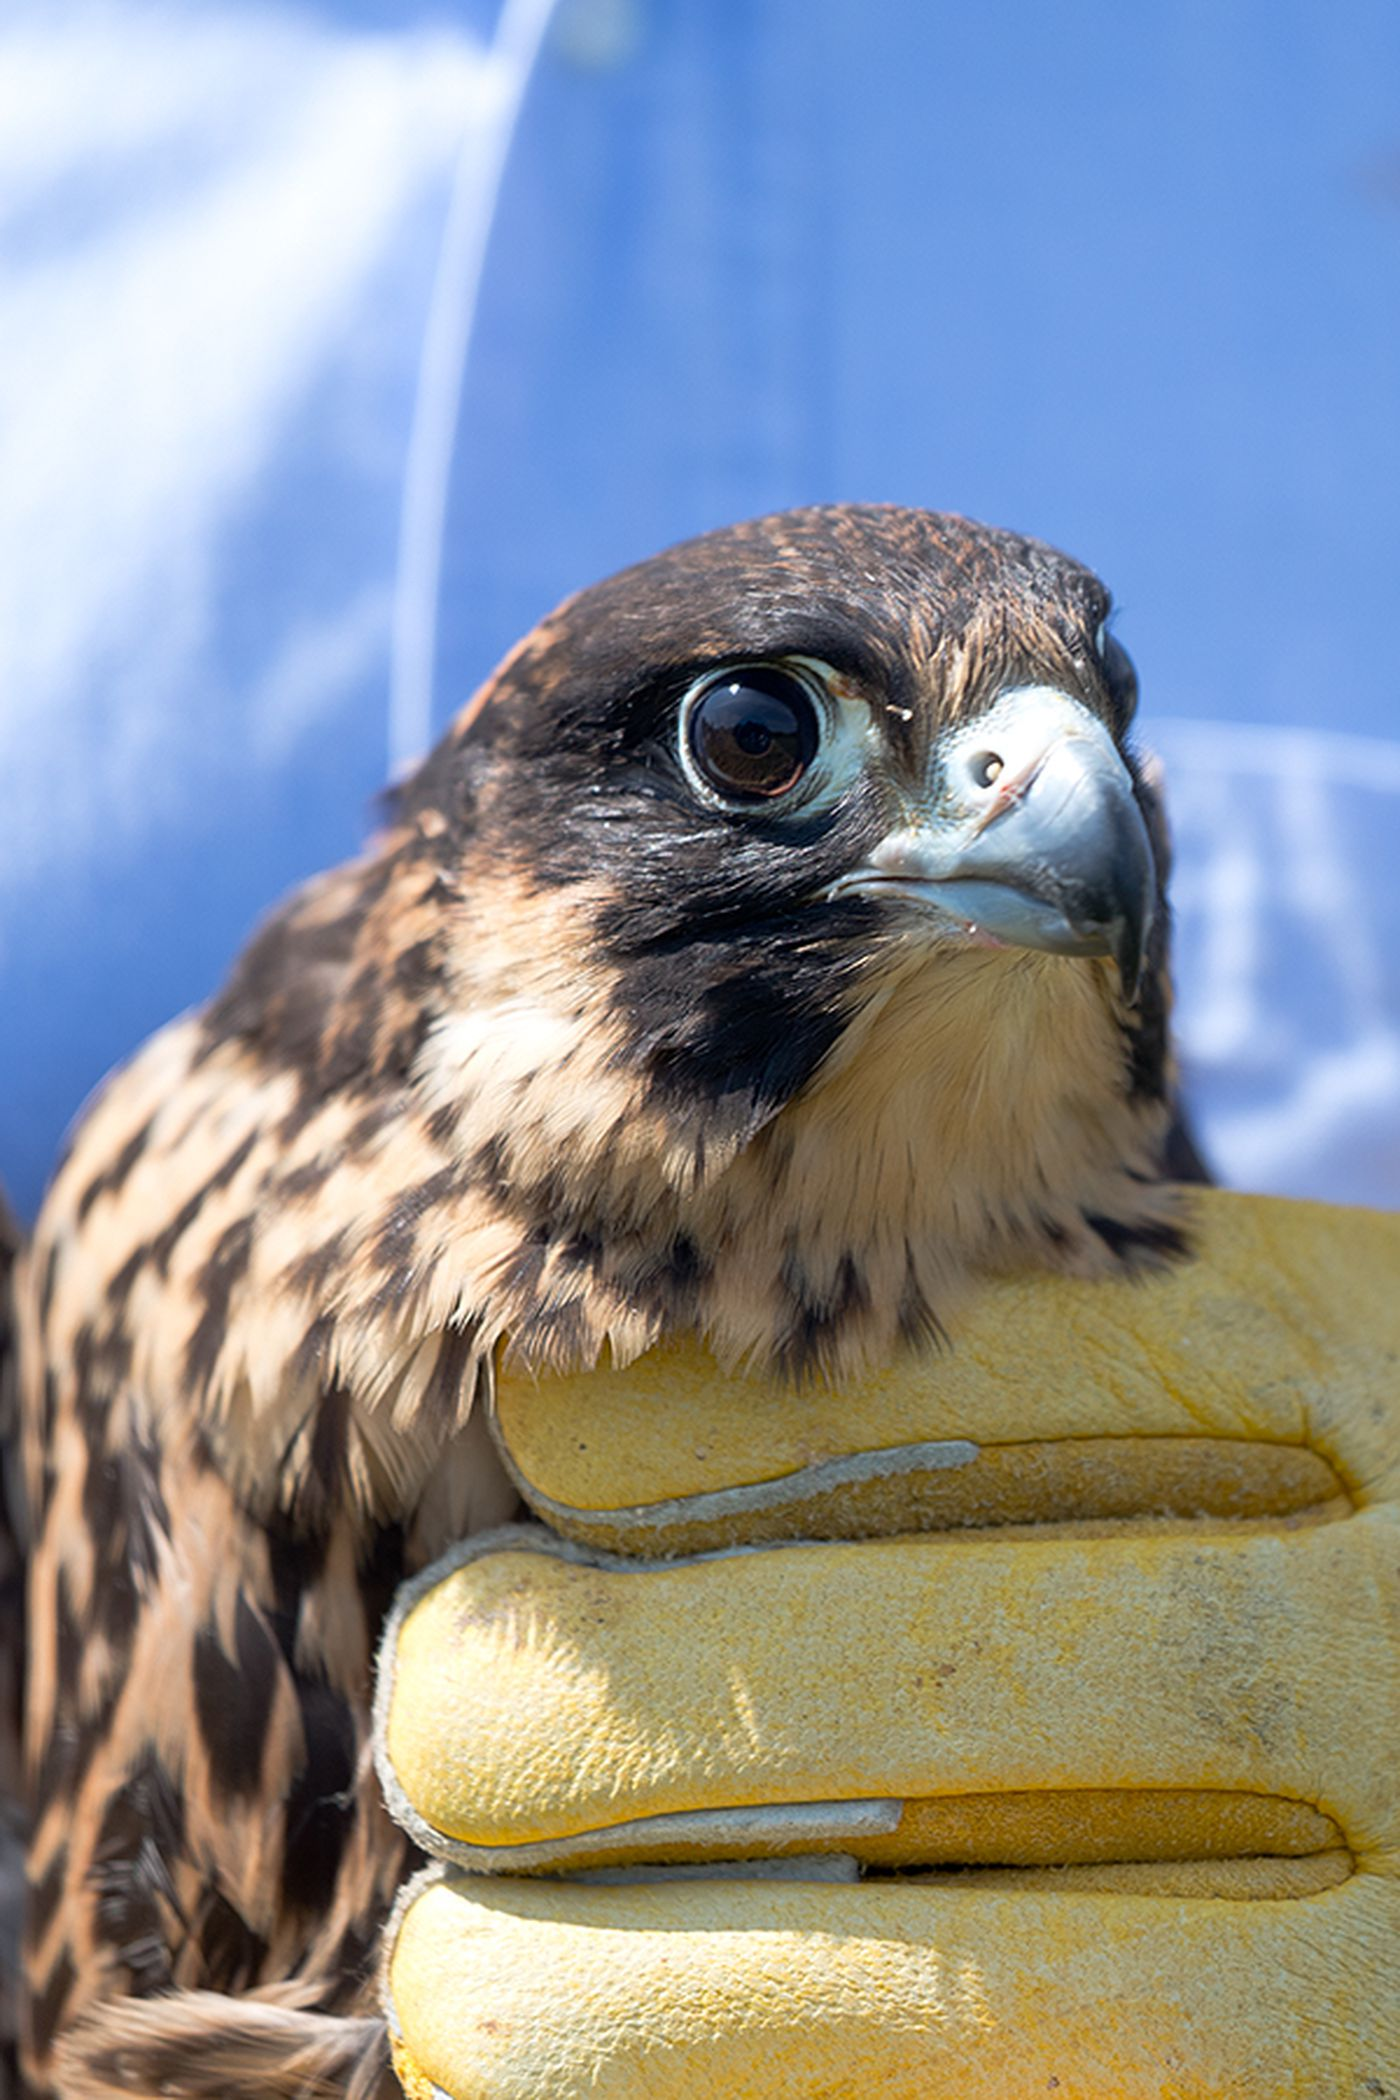 Peregrine falcon released into the wild in Hopewell